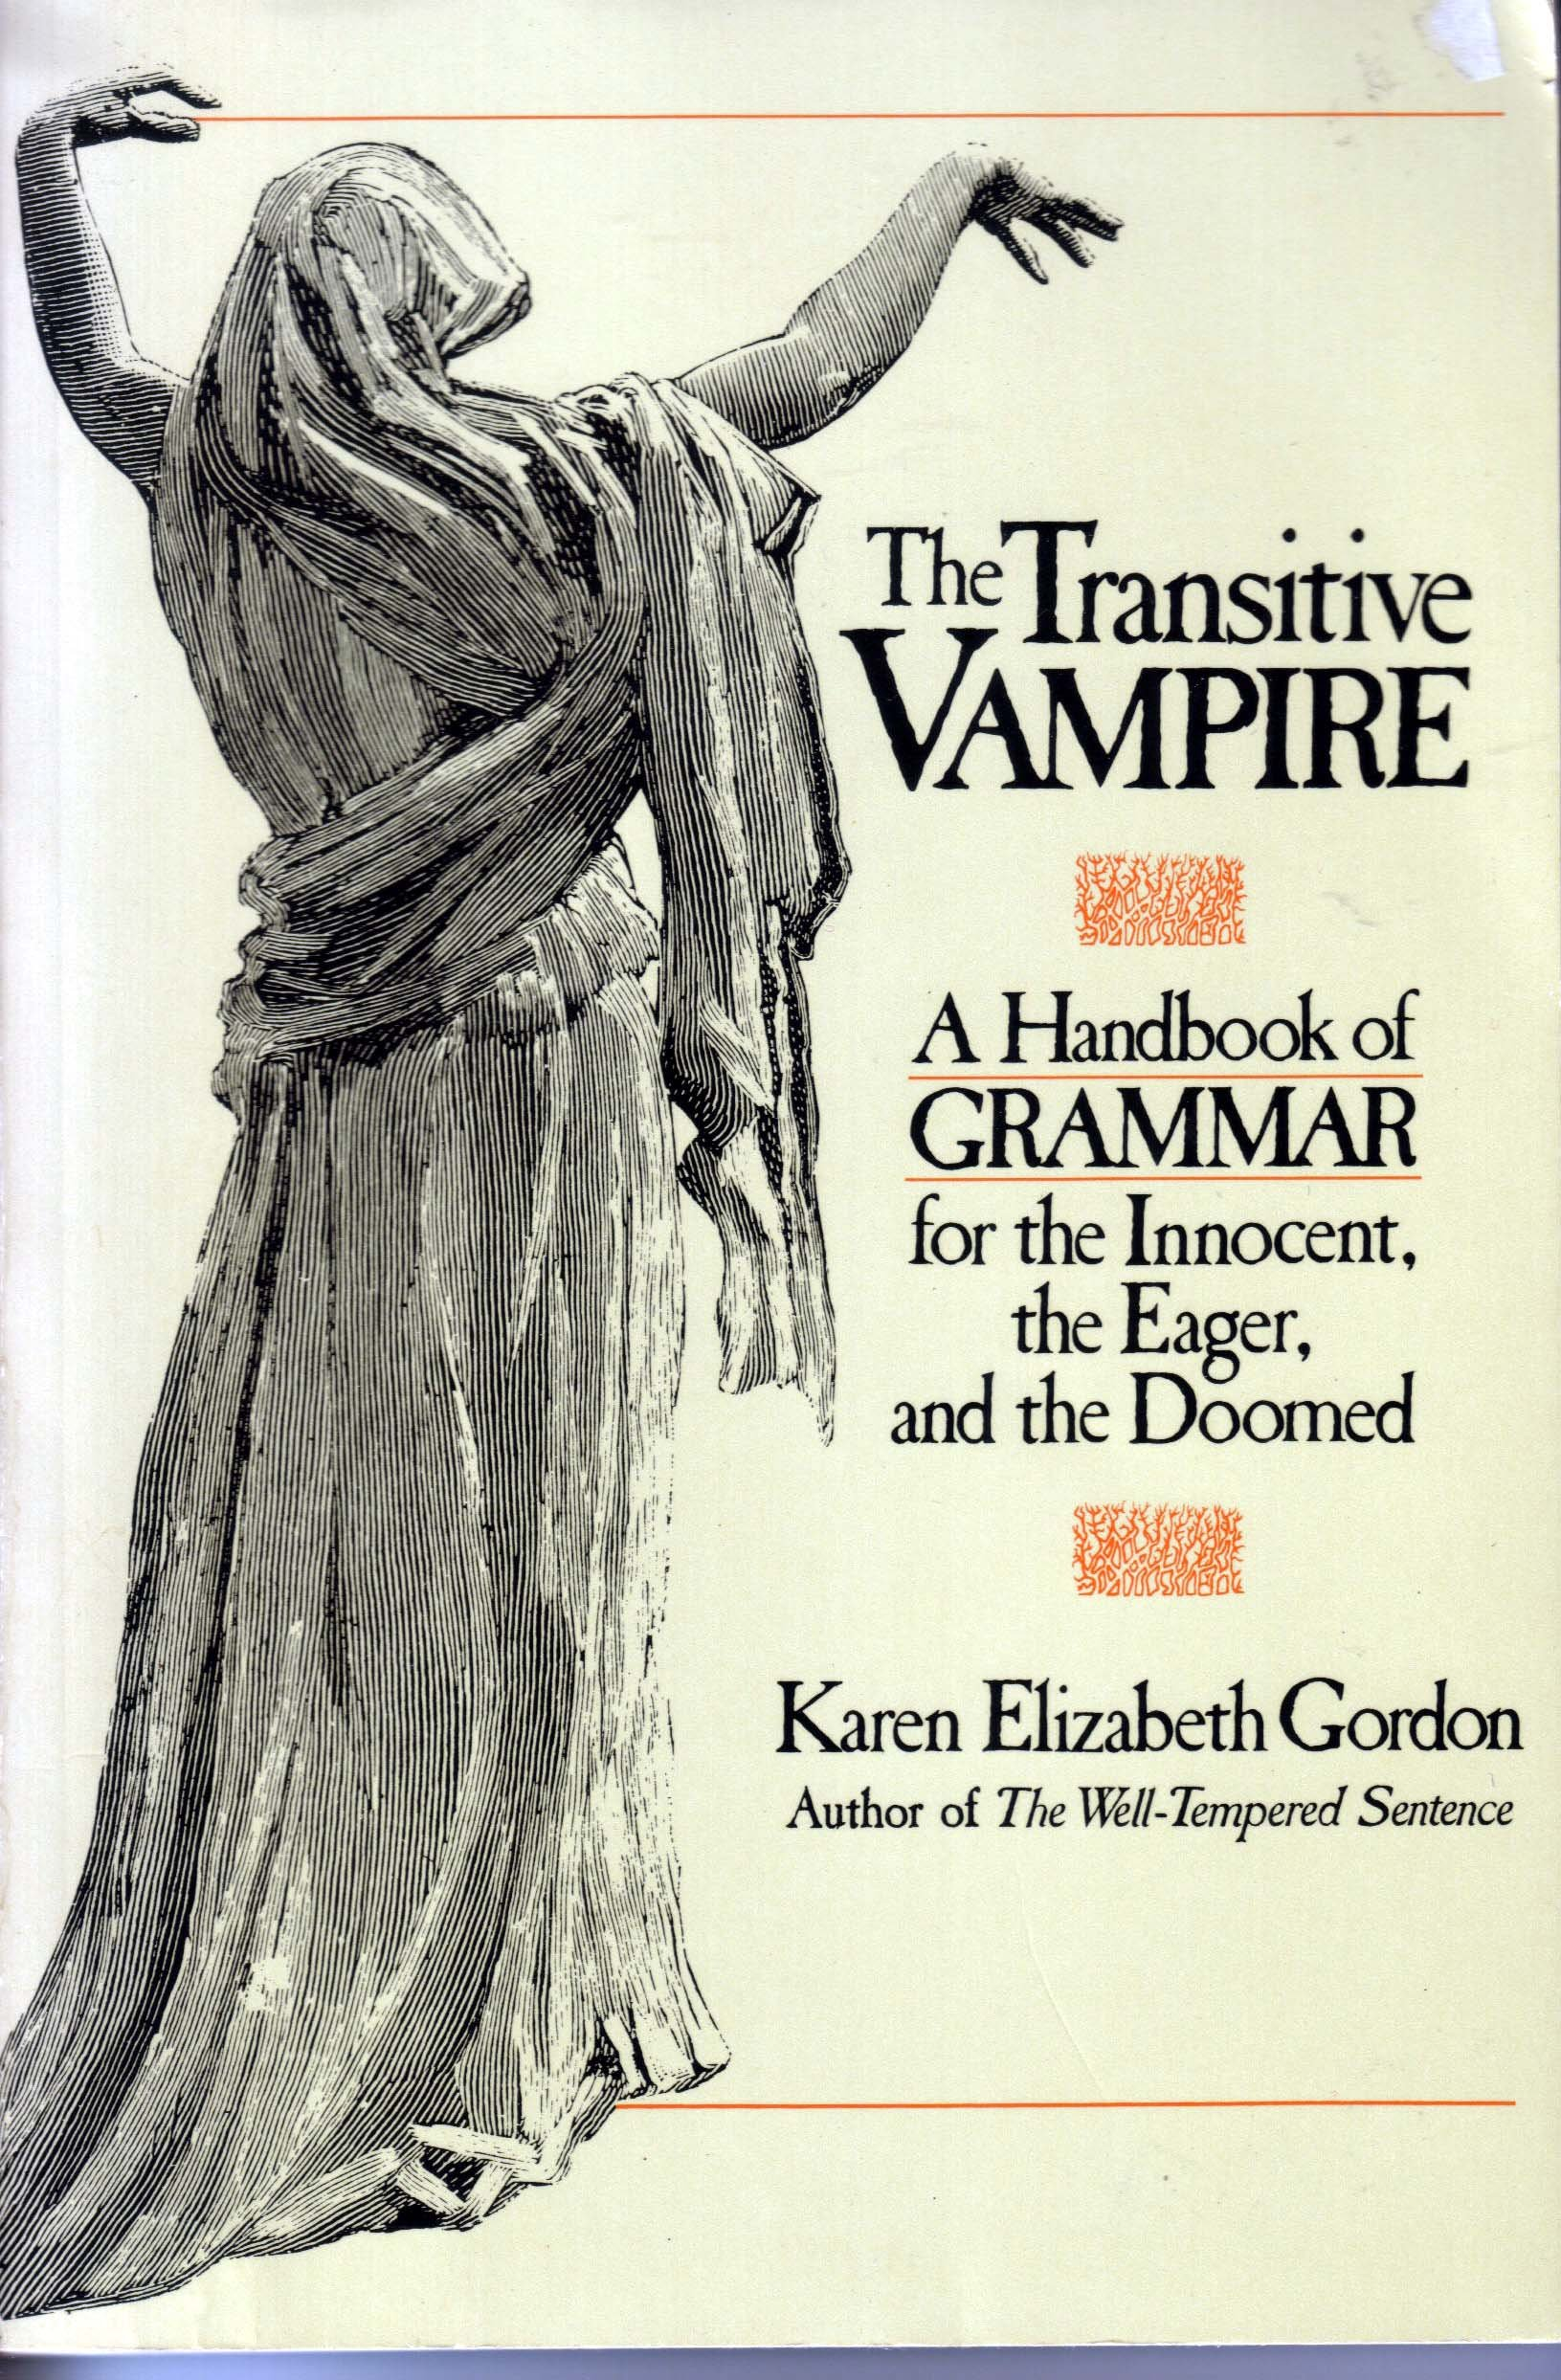 The Transitive Vampire: a Handbook of Grammar for the Innocent, the Eager, and the Doomed, Gordon, Karen Elizabeth